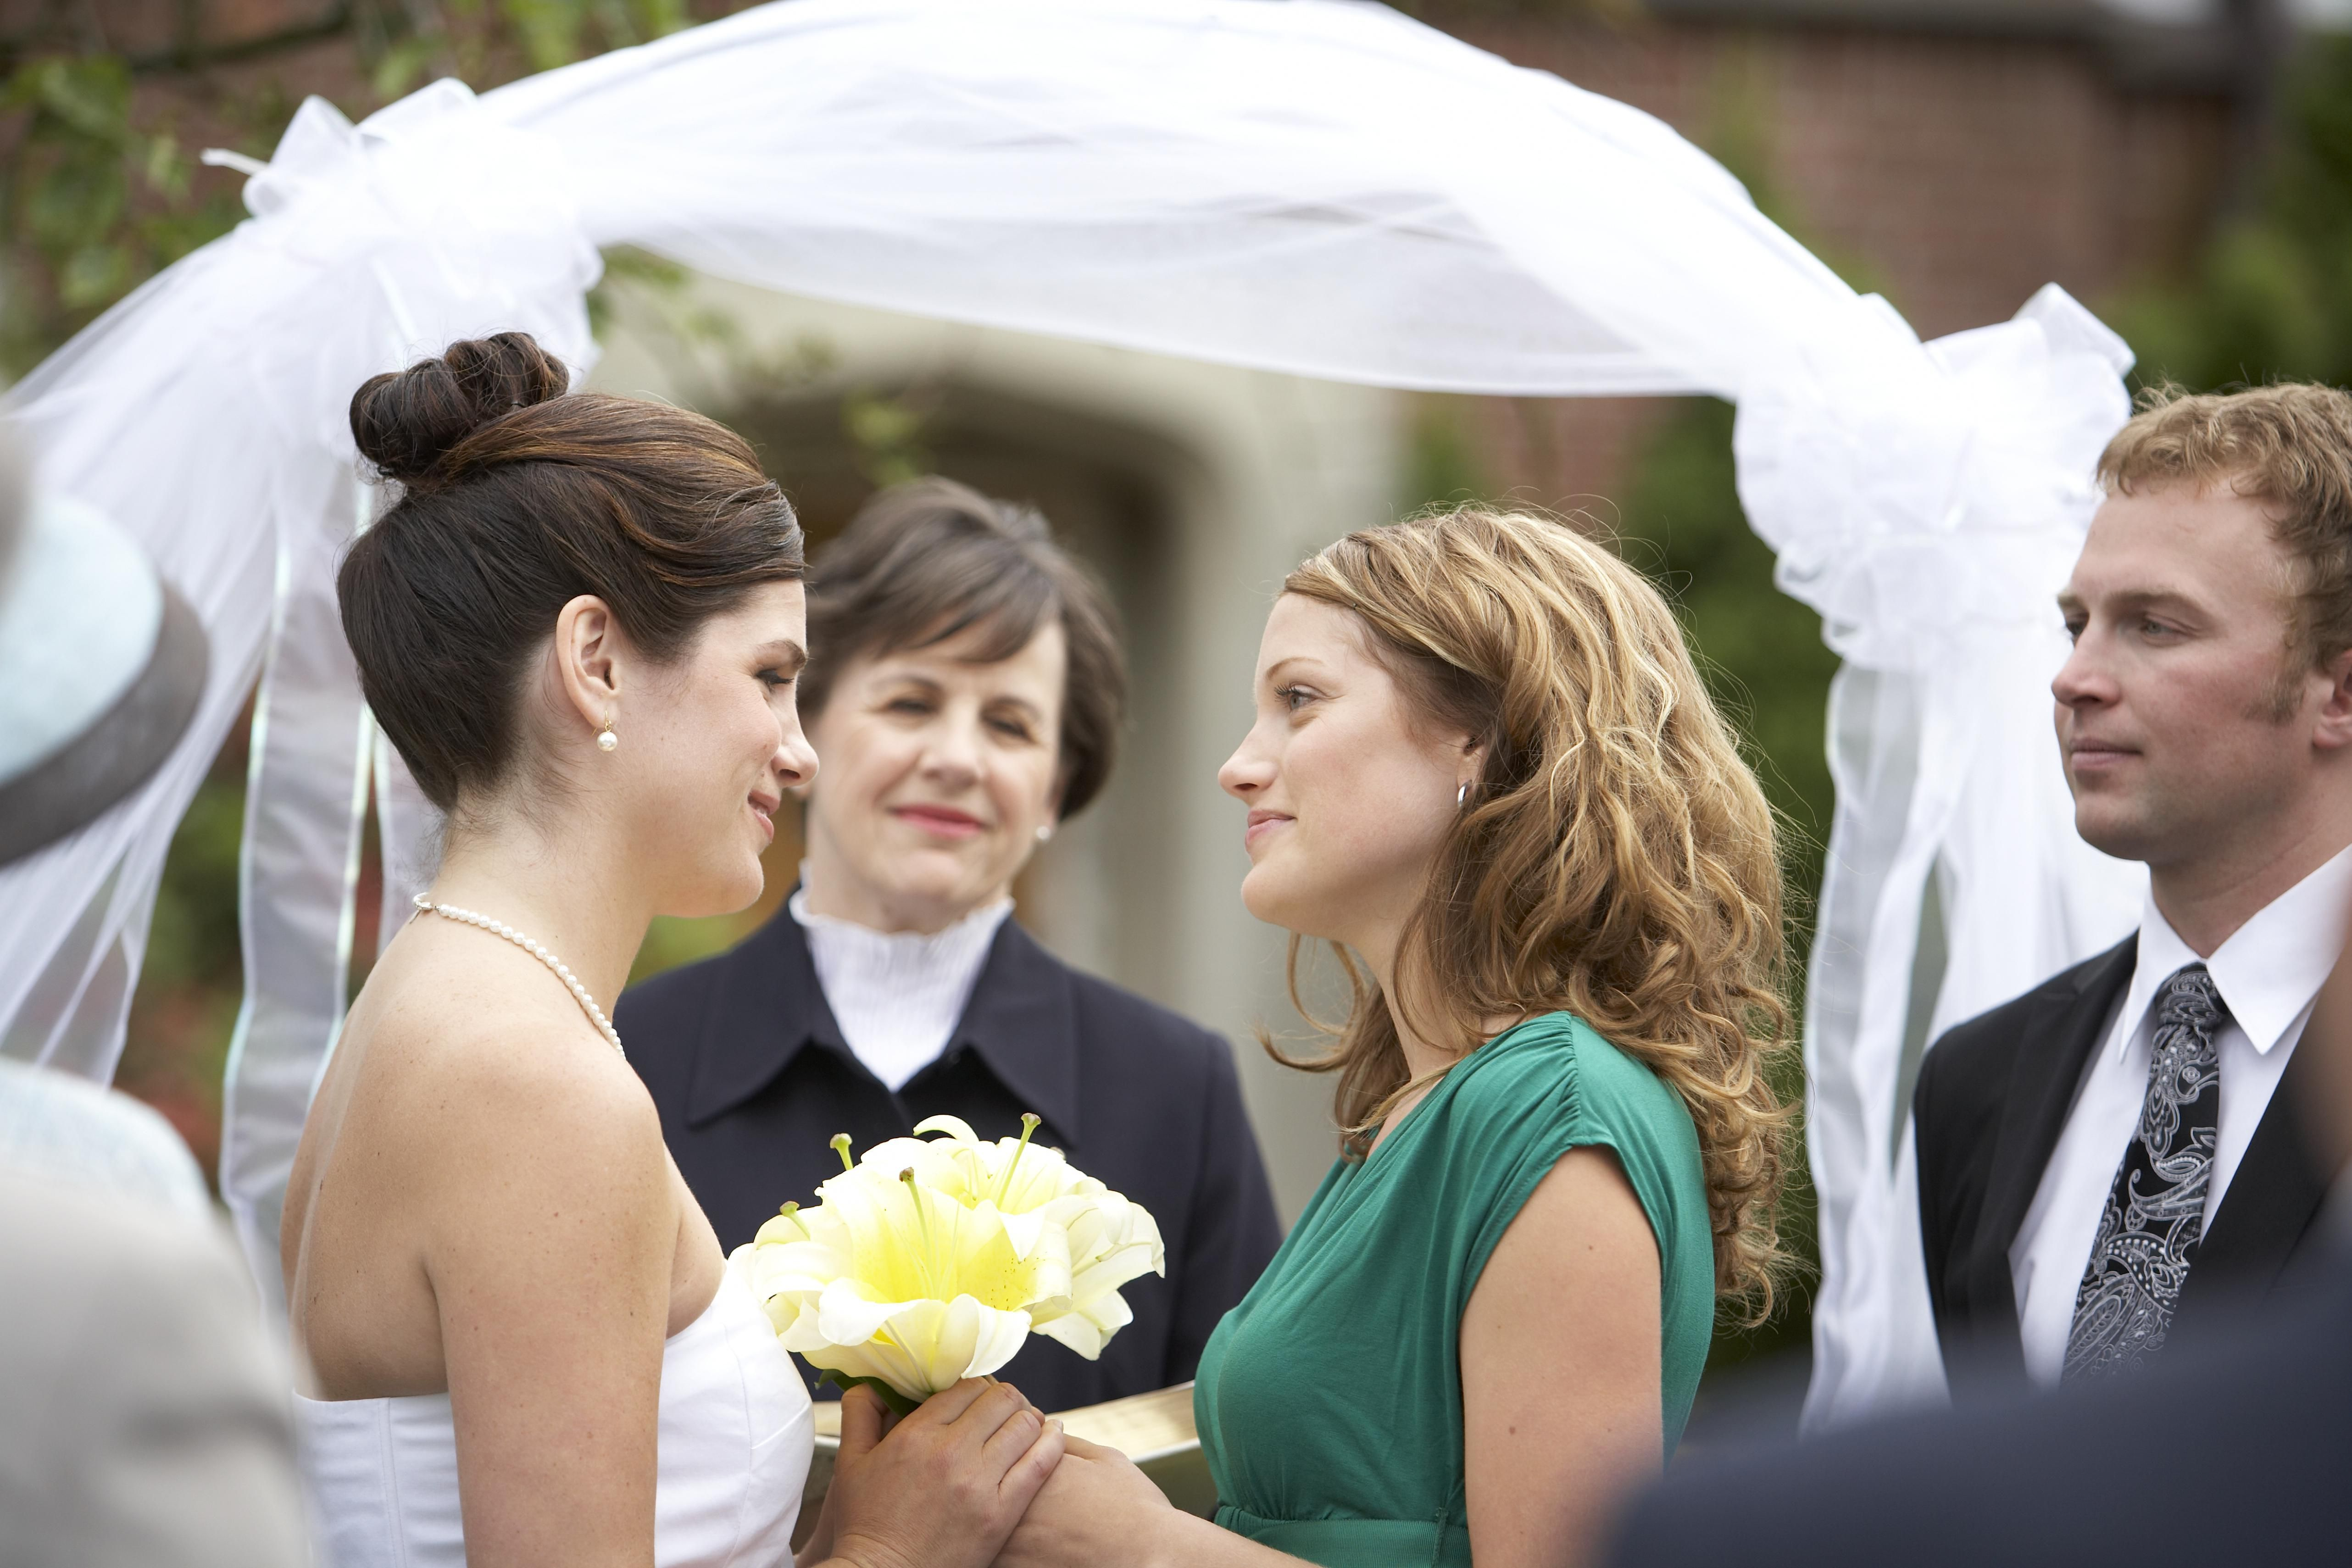 where can same sex couples get married